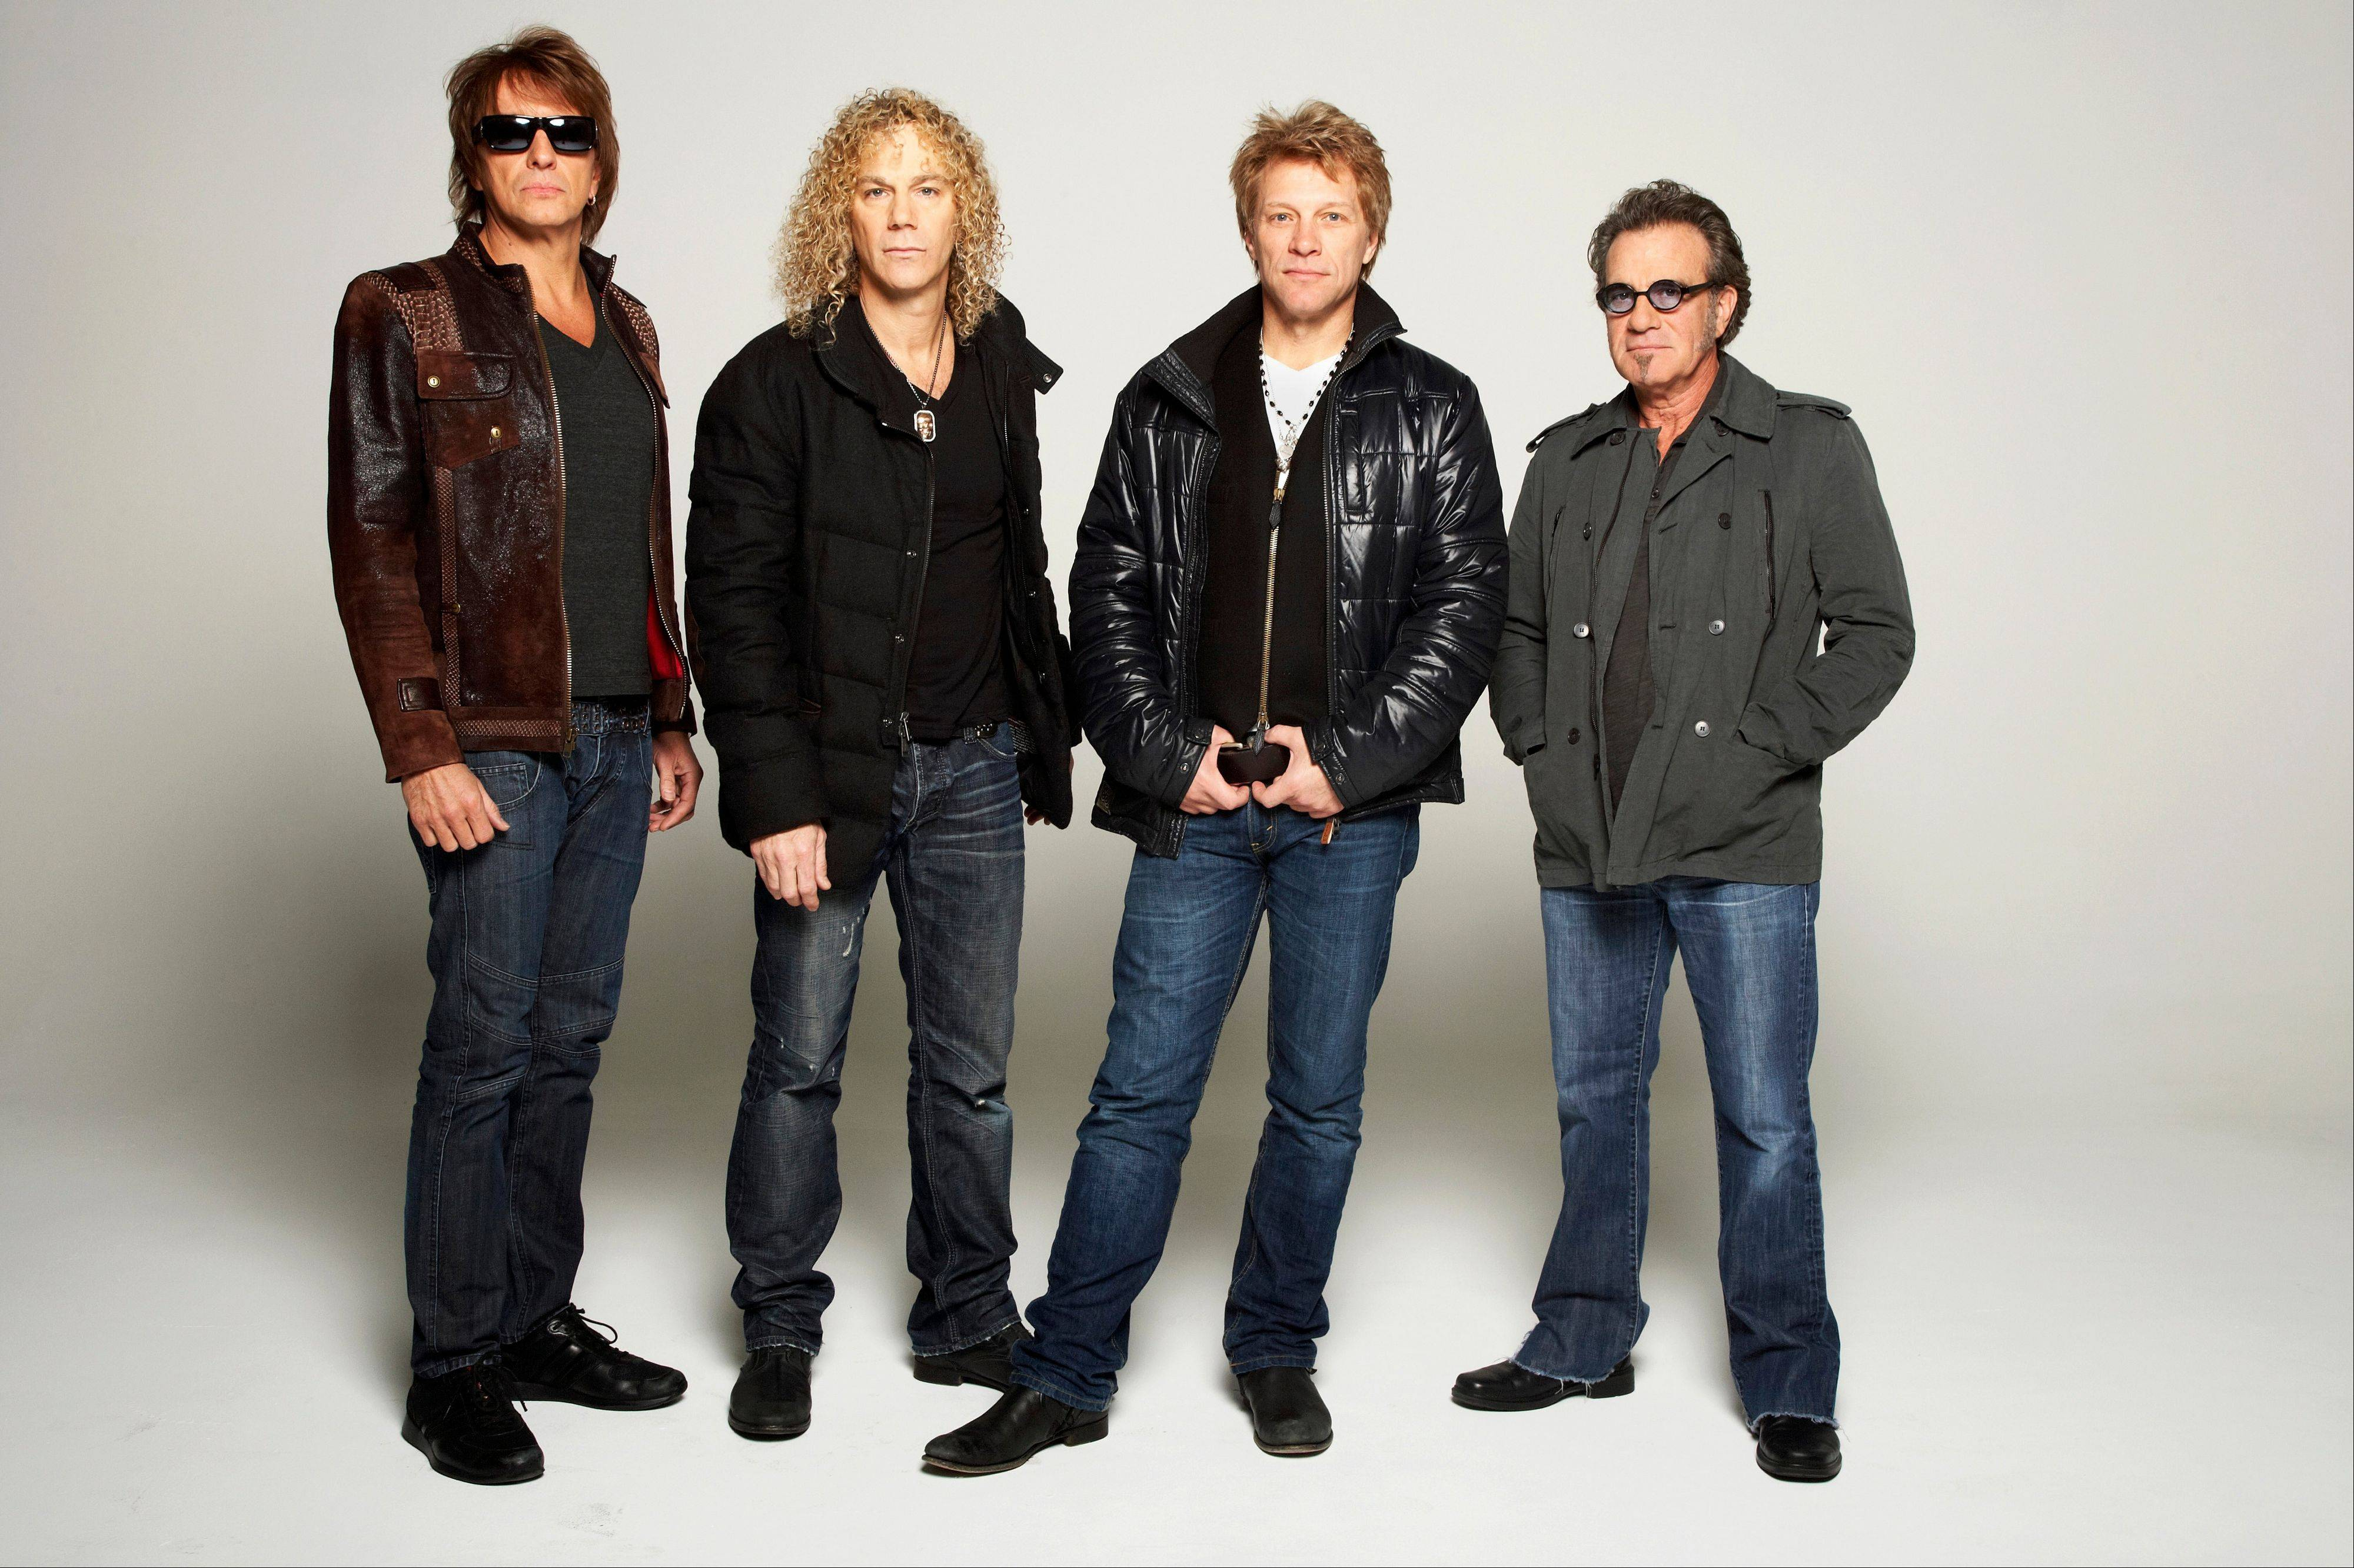 In this Nov. 29, 2012 file photo, rock band Bon Jovi, from left, Richie Sambora, David Bryan, Jon Bon Jovi and Tico Torres pose for a portrait, in the Brooklyn Borough of New York. The New Jersey band had the top-grossing tour in 2013 despite some bumps including drummer Tico Torres� two surgeries and the absense of guitarist Richie Sambora.